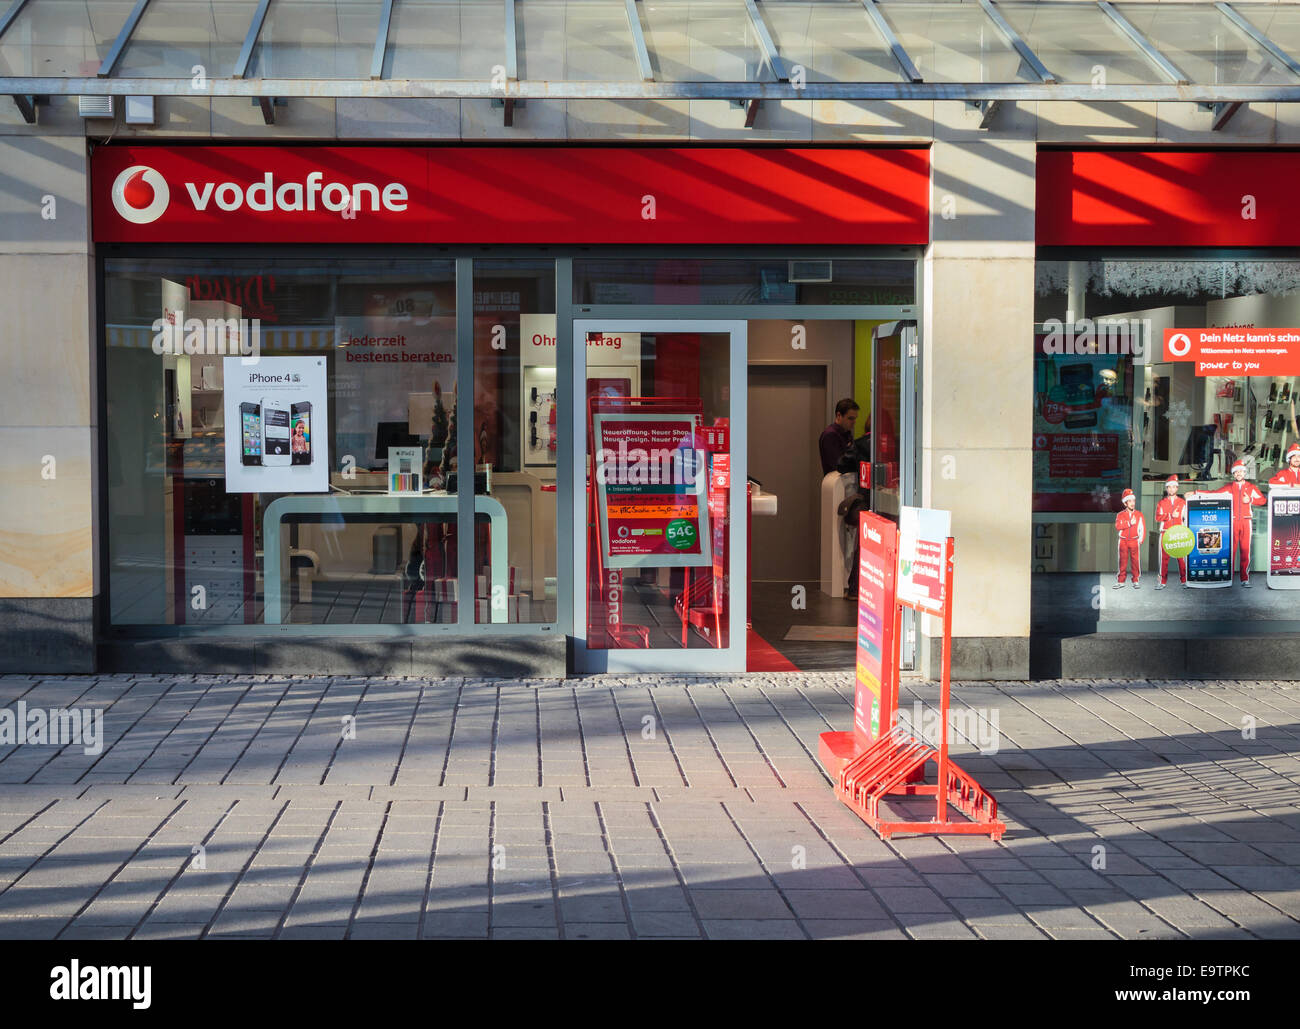 Vodafone store front with iPhone 4S promotion - Stock Image